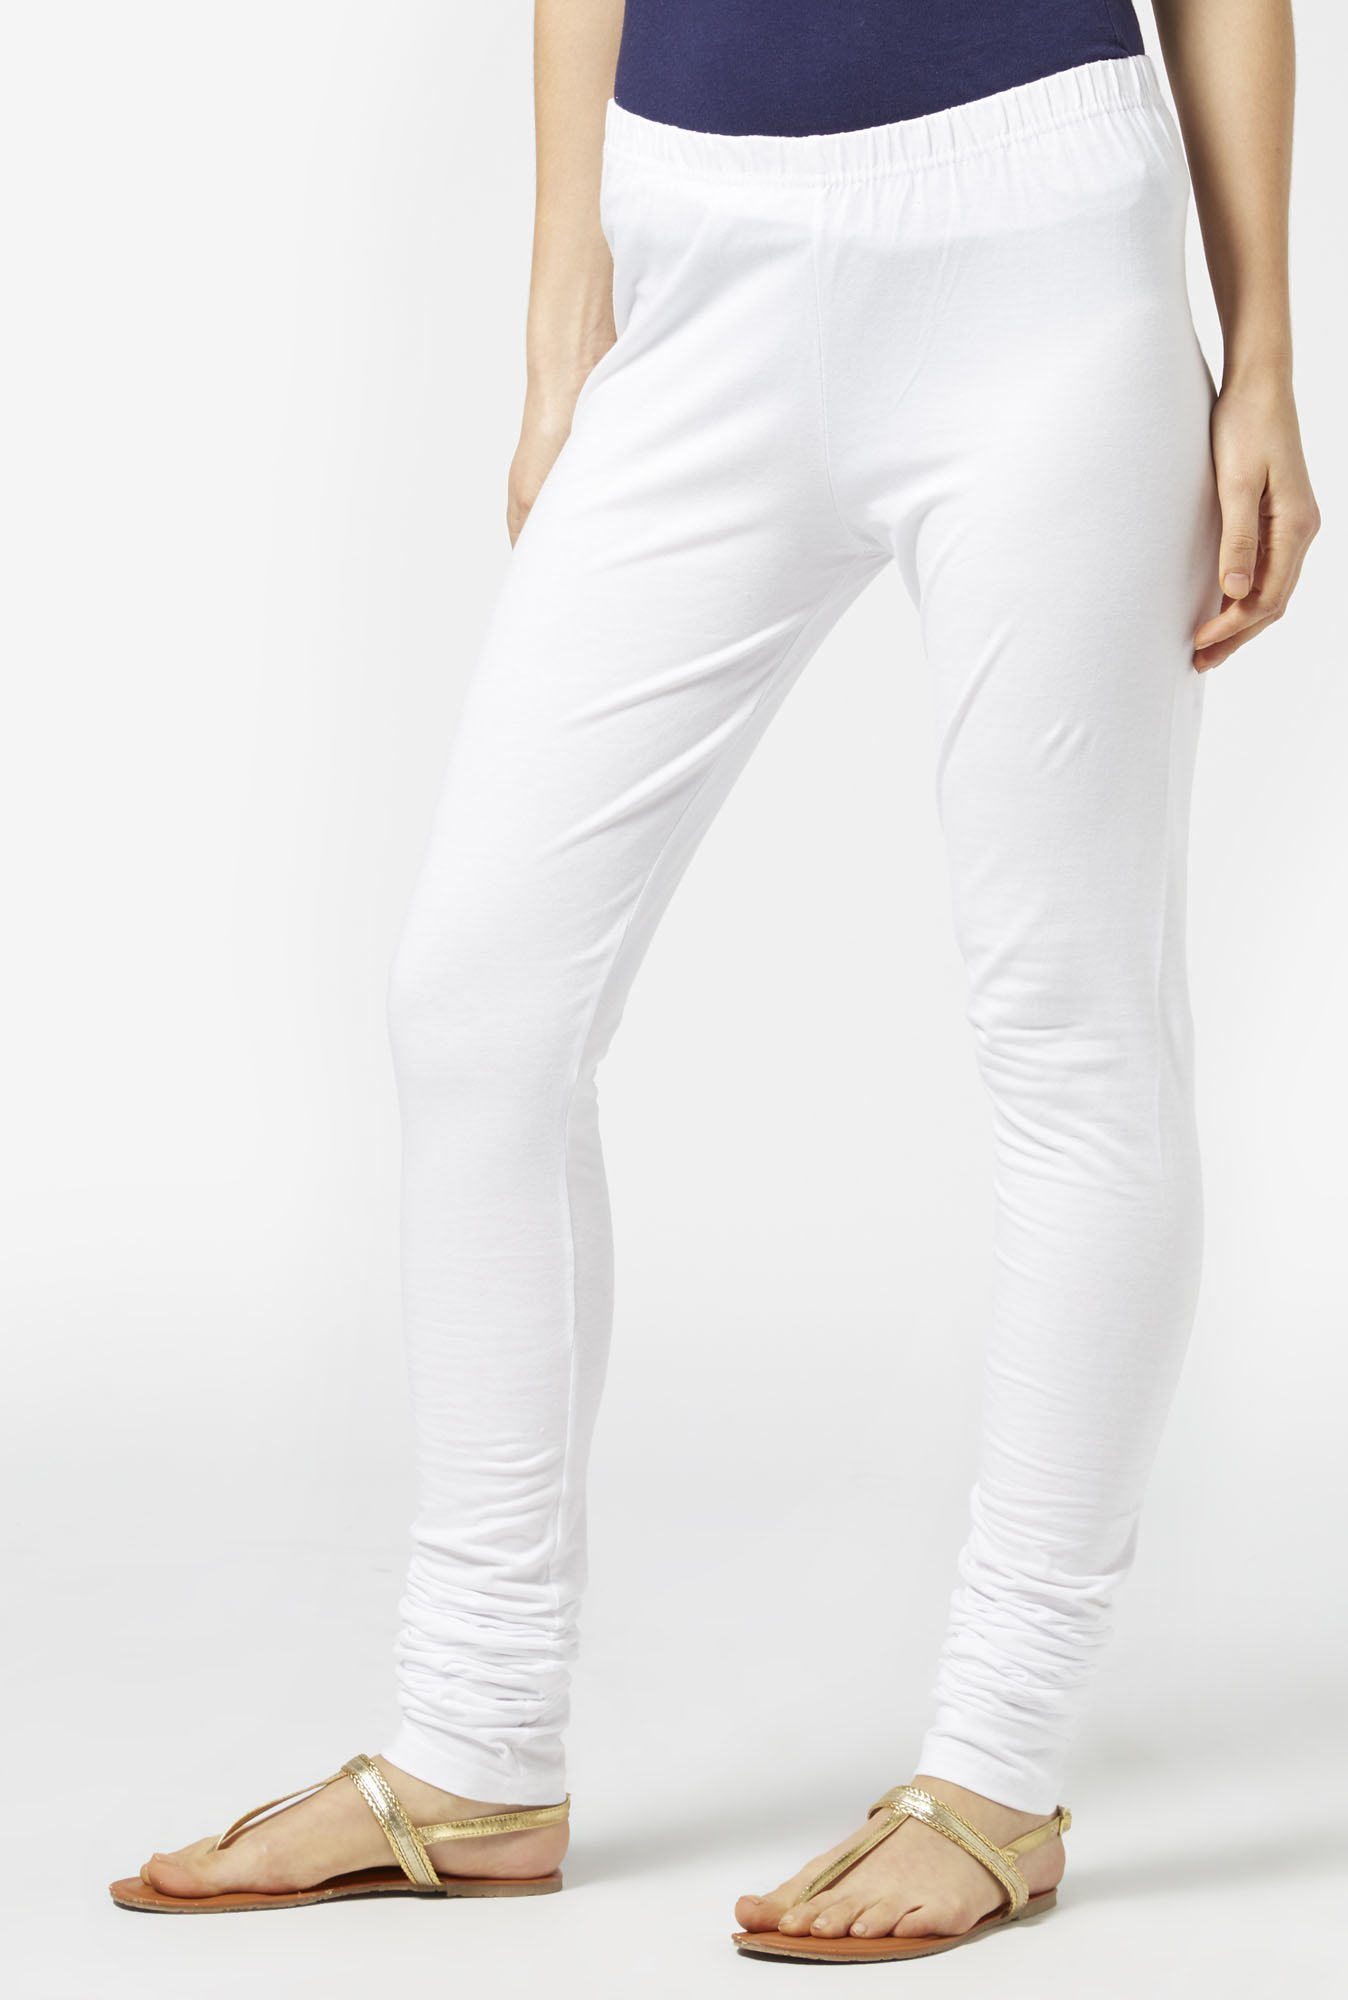 Zudio White Leggings